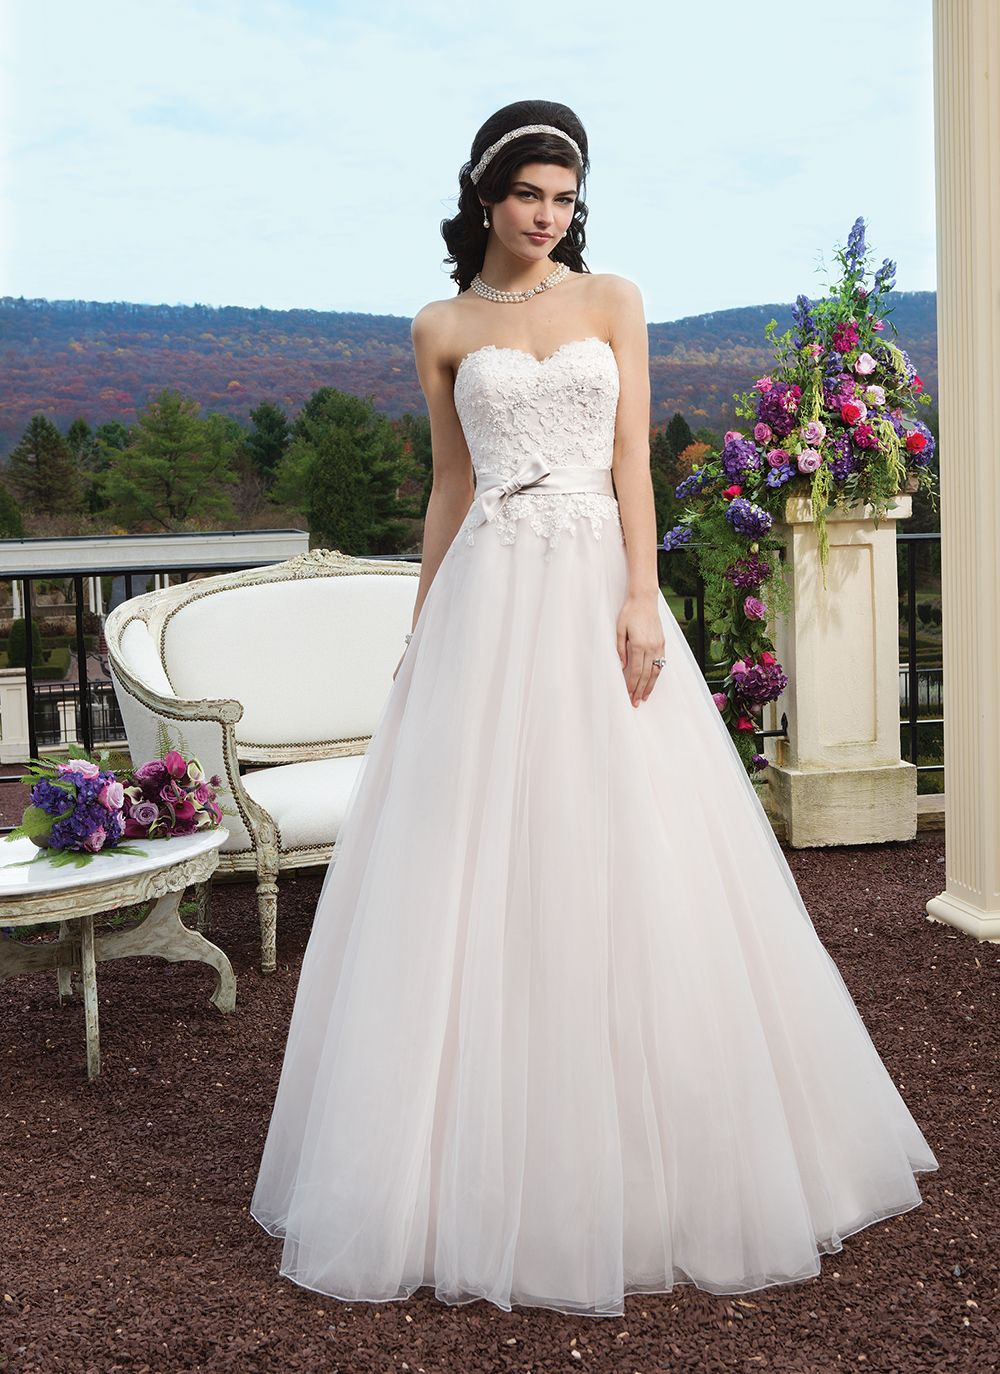 Wedding dress with bow on back  Sincerity wedding dress style  Tulle and beaded Alencon lace